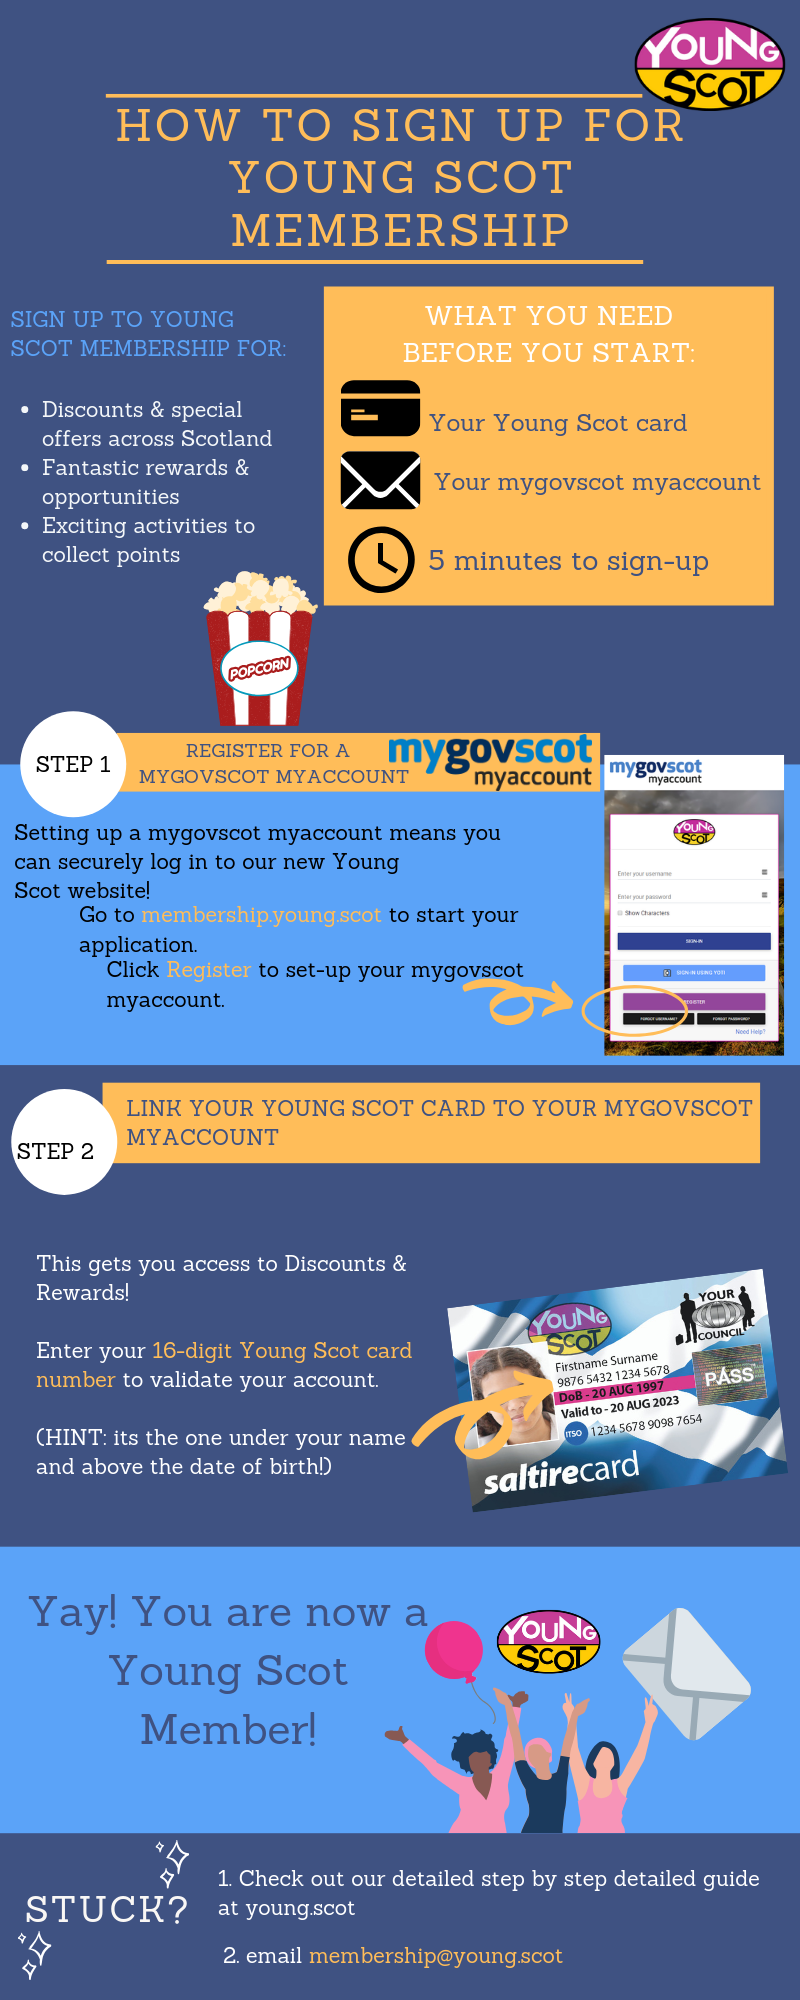 How to Become a Young Scot Member | Young Scot